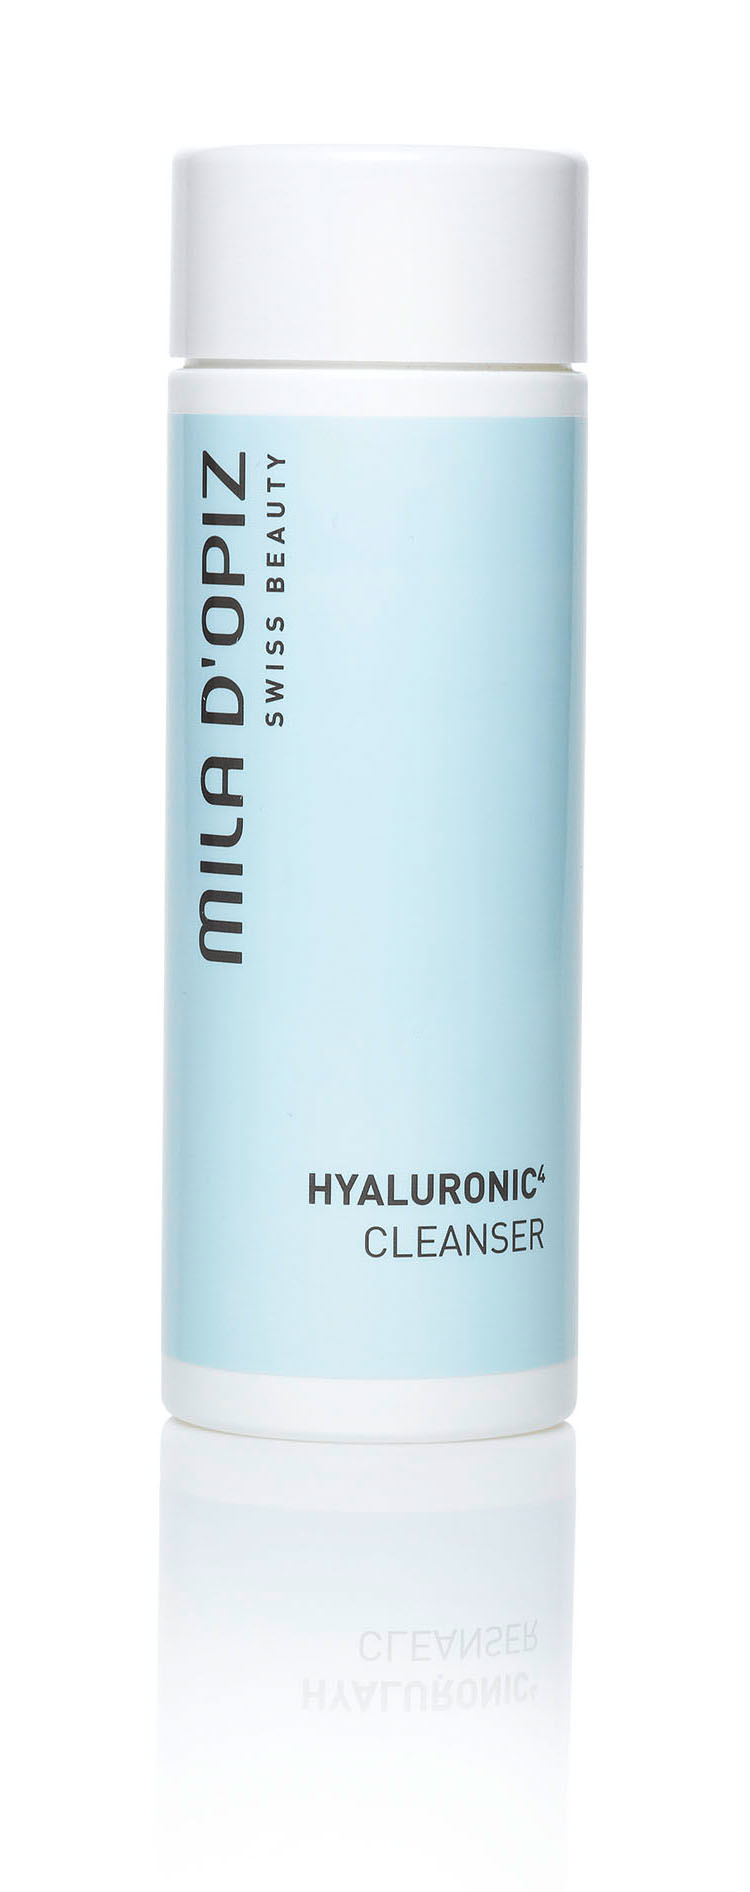 Hyaluronic⁴ Cleanser